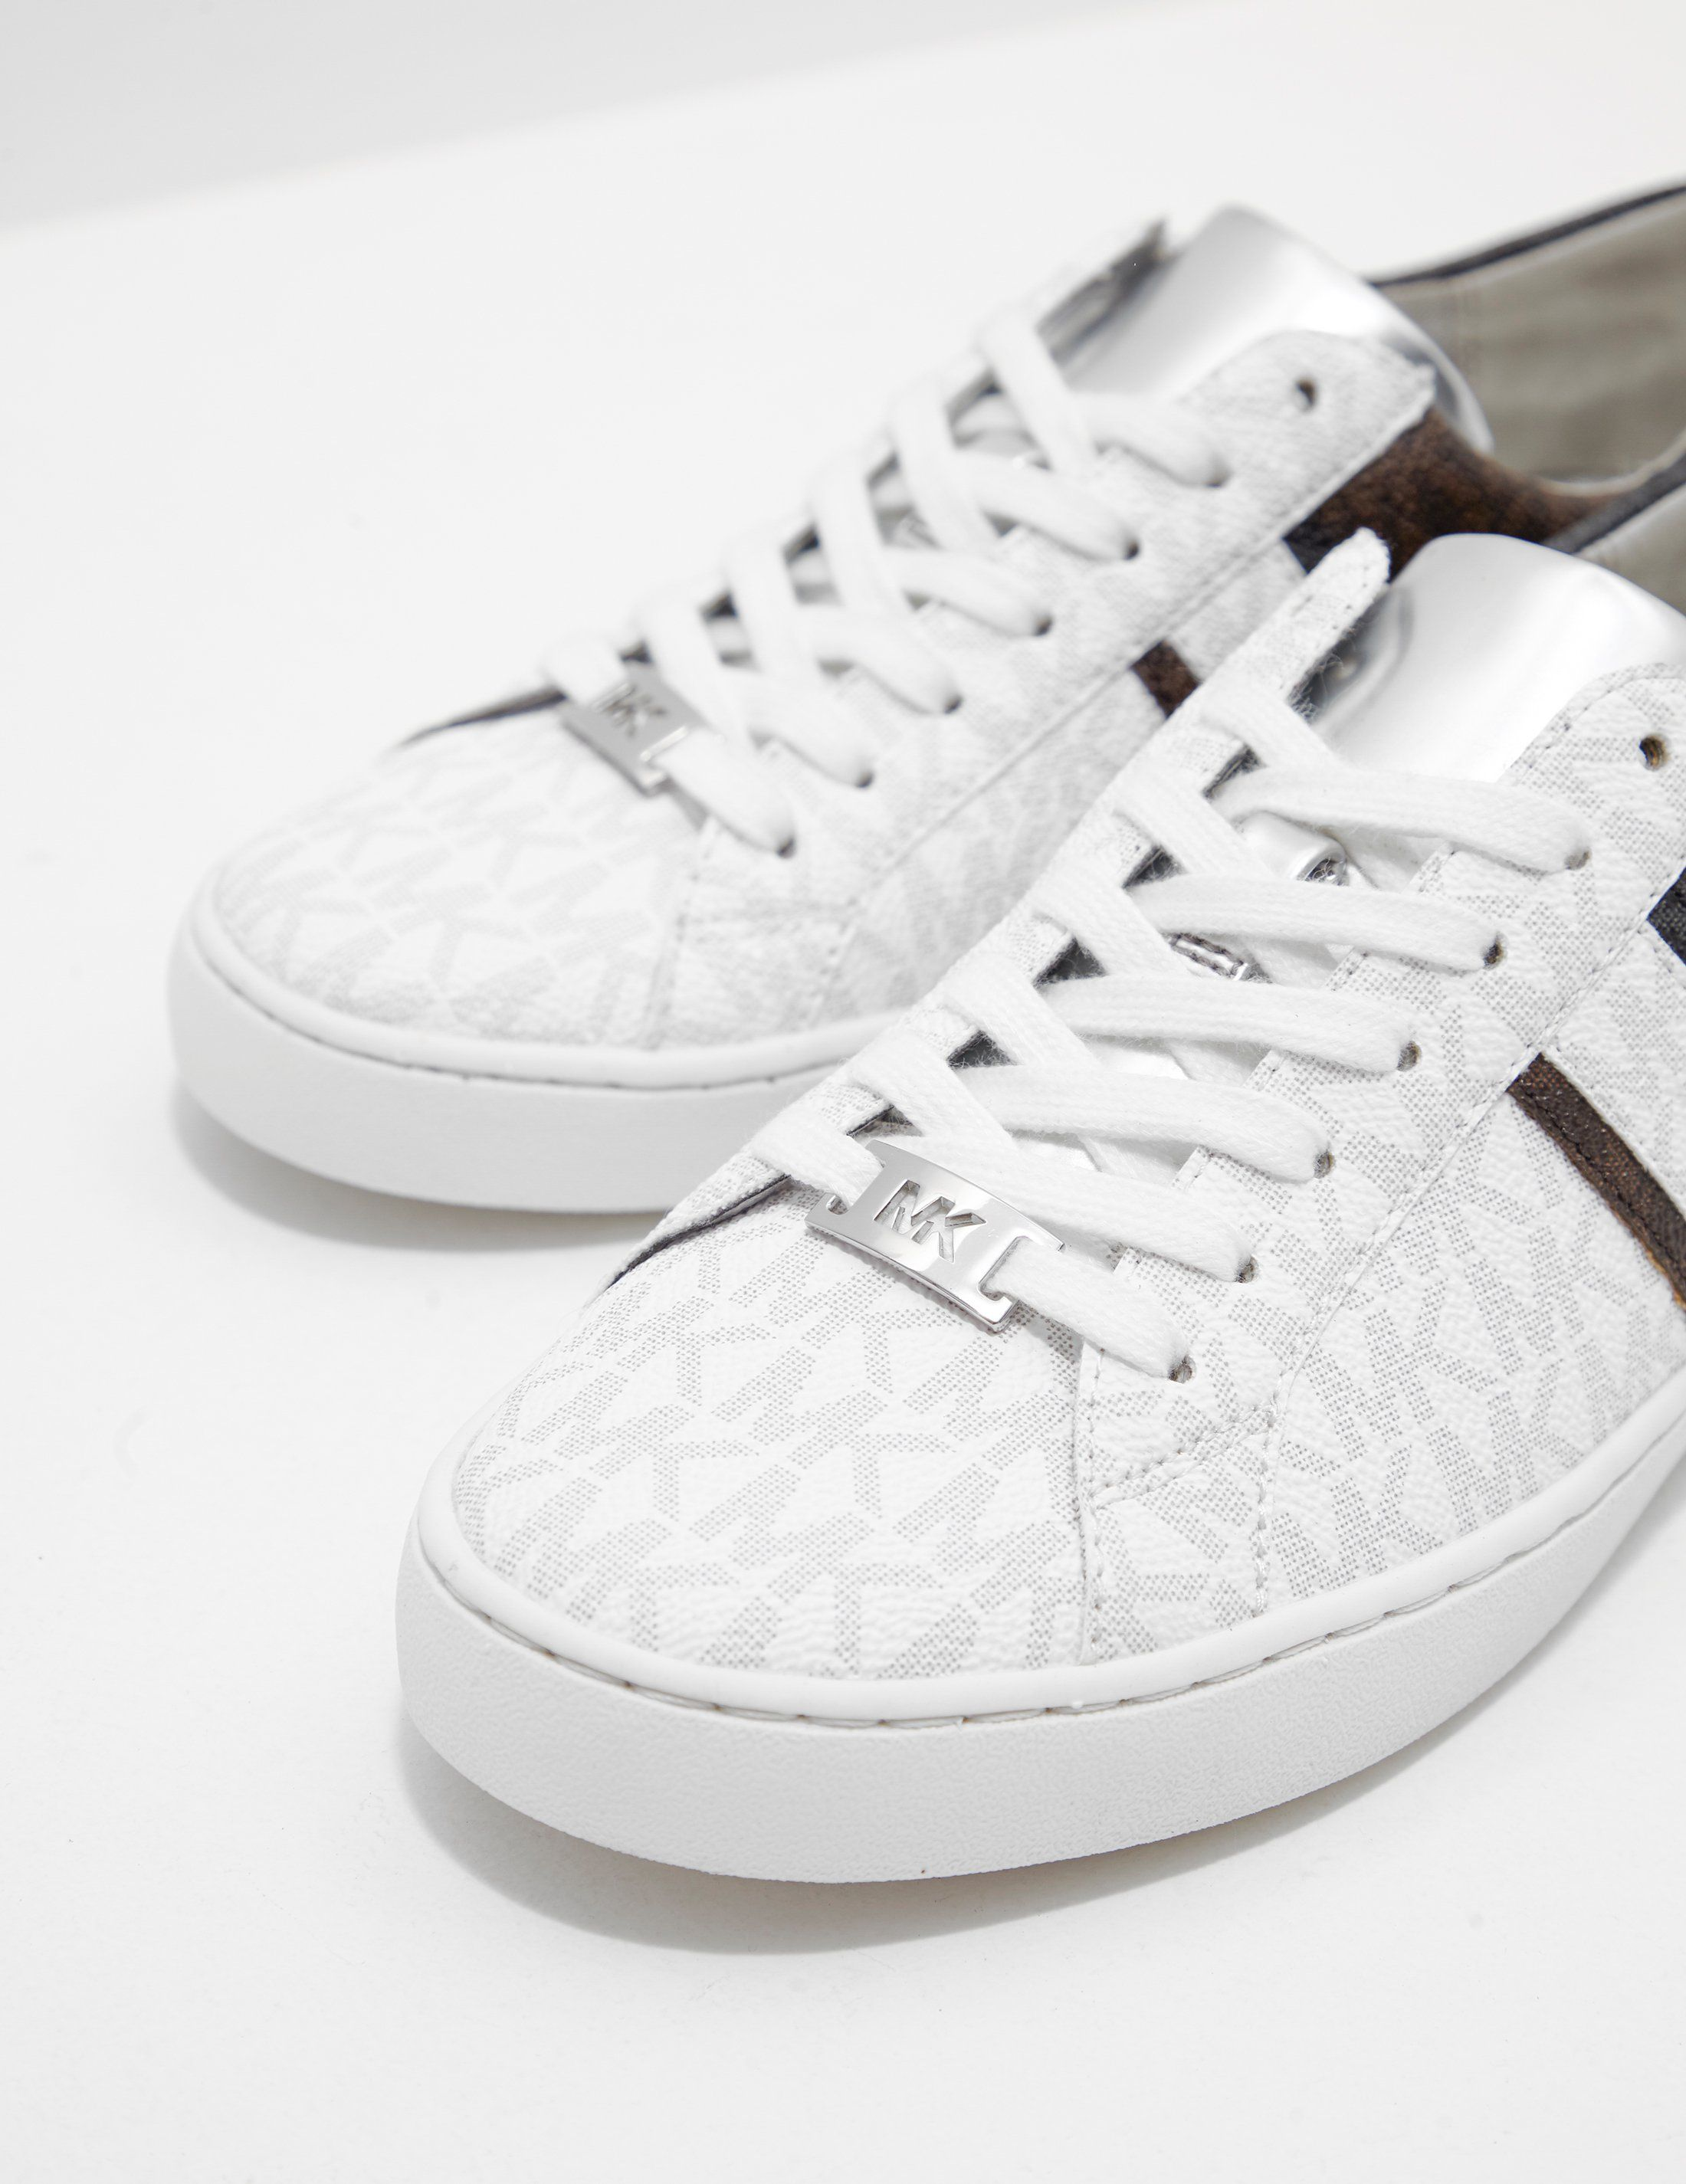 Michael Kors Keaton Stripe Trainers